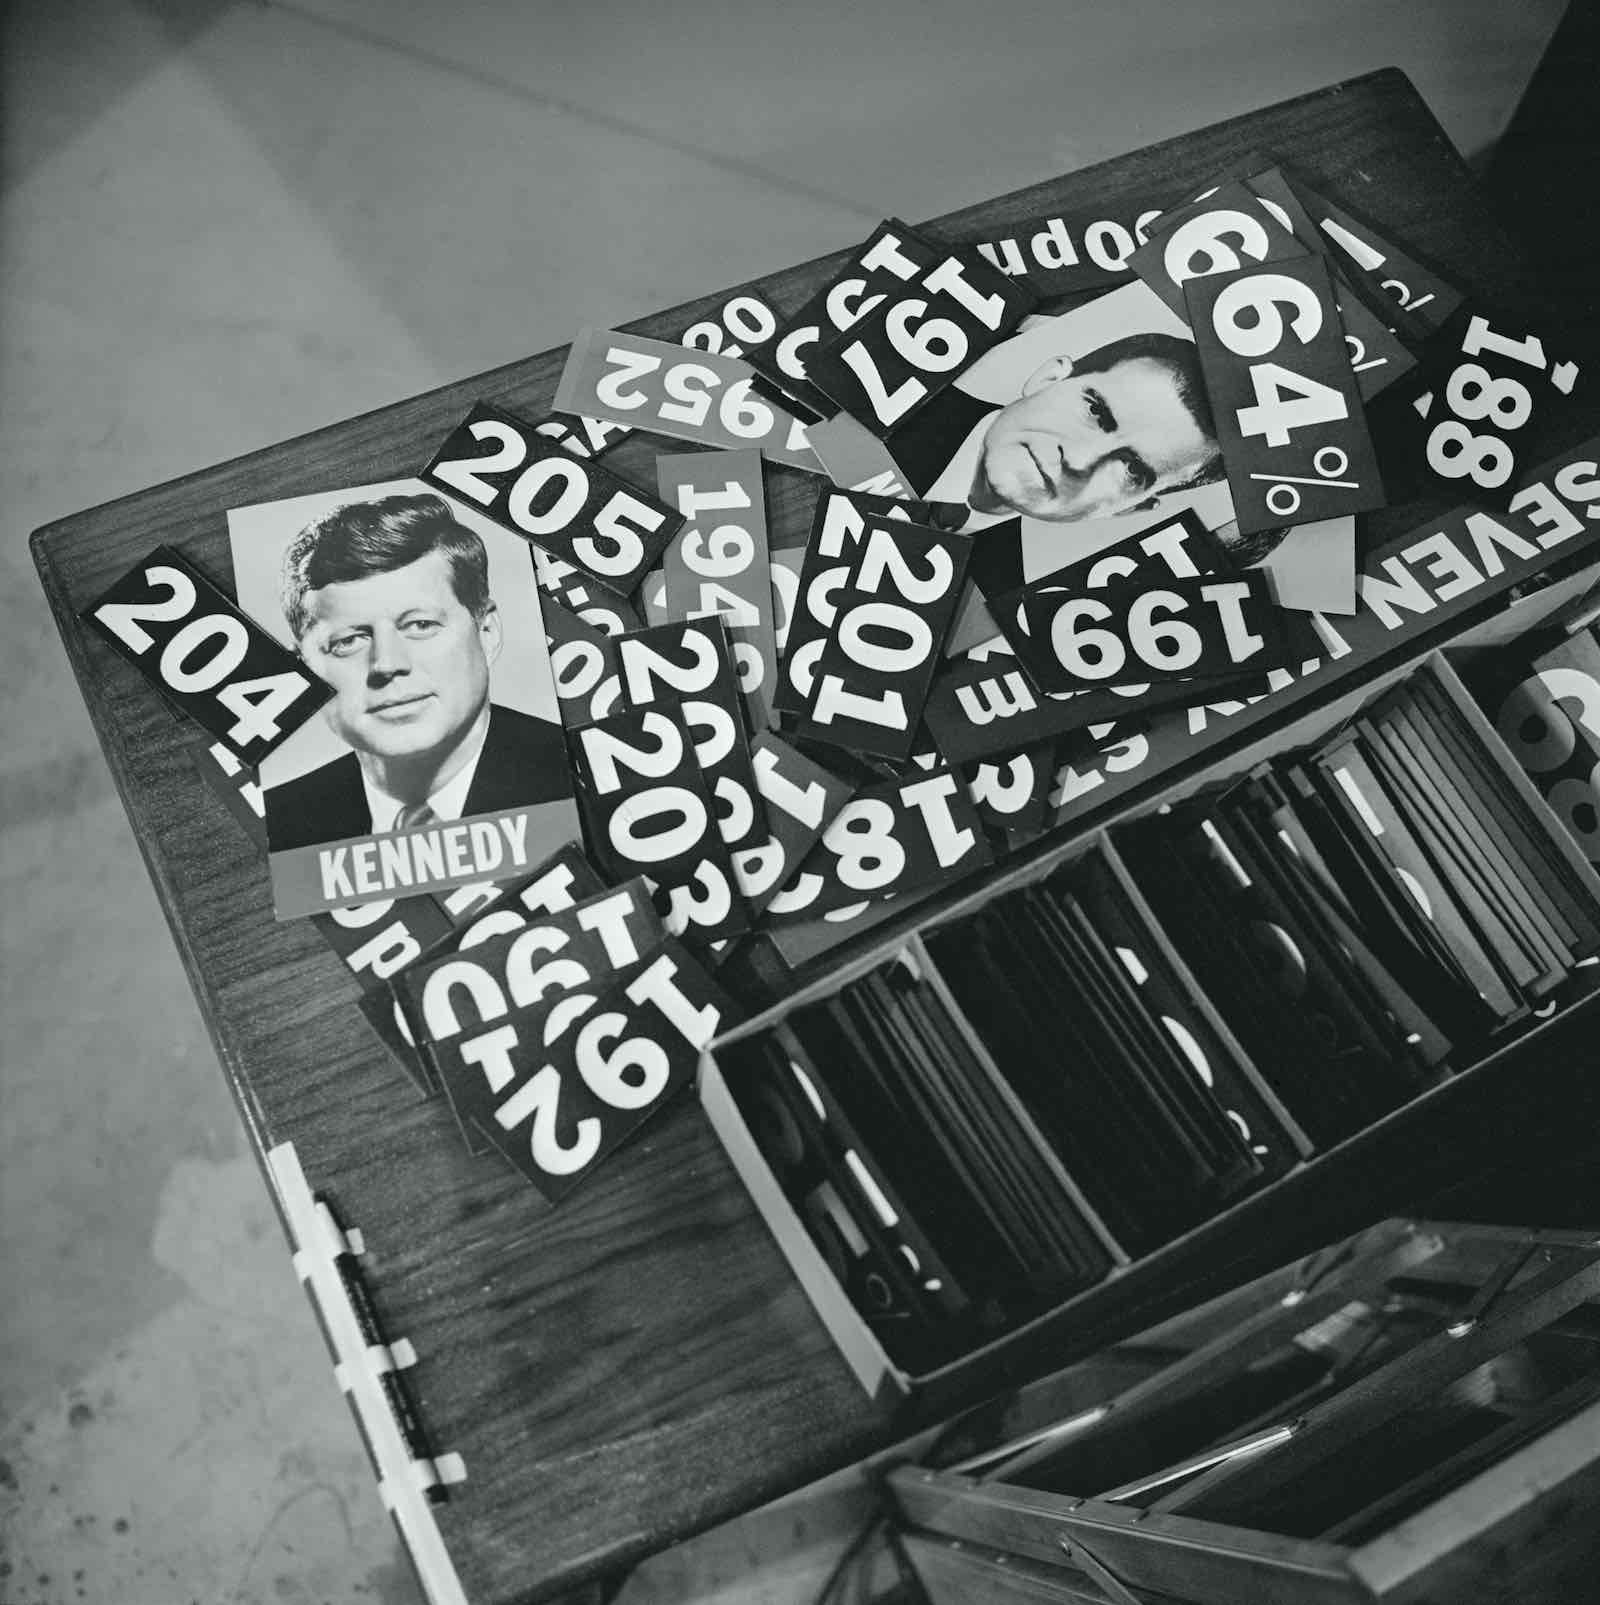 Tally board numbers for the 1960 US presidential election (CBS via Getty Images)